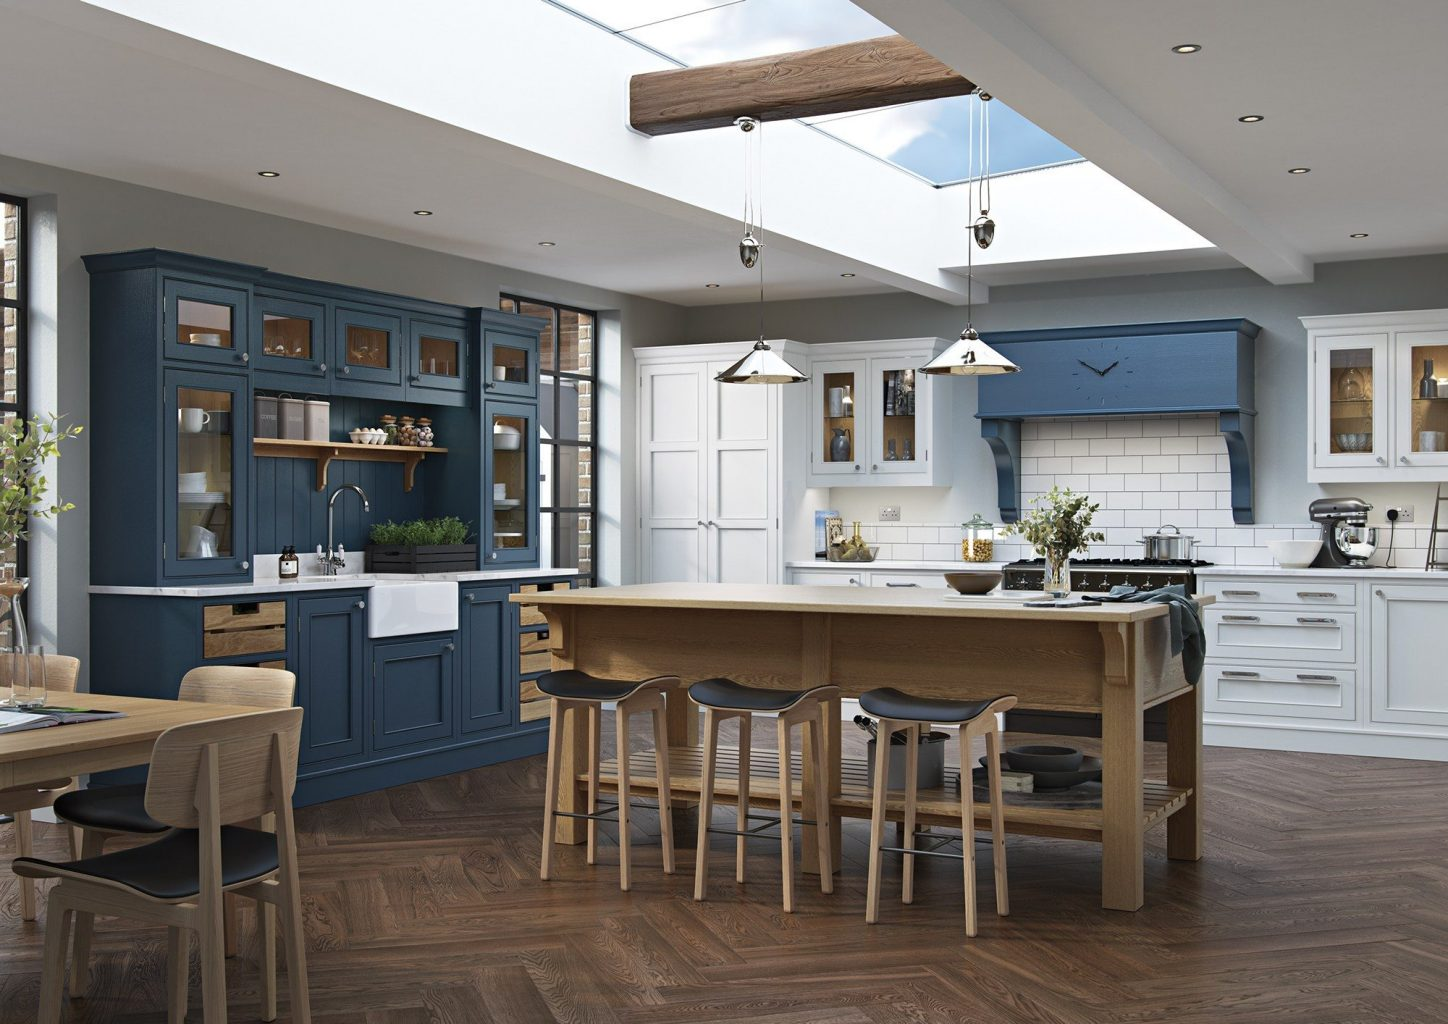 design best Kitchen Cannes, blue and timber kitchen in Cannes, kitchen project Cannes